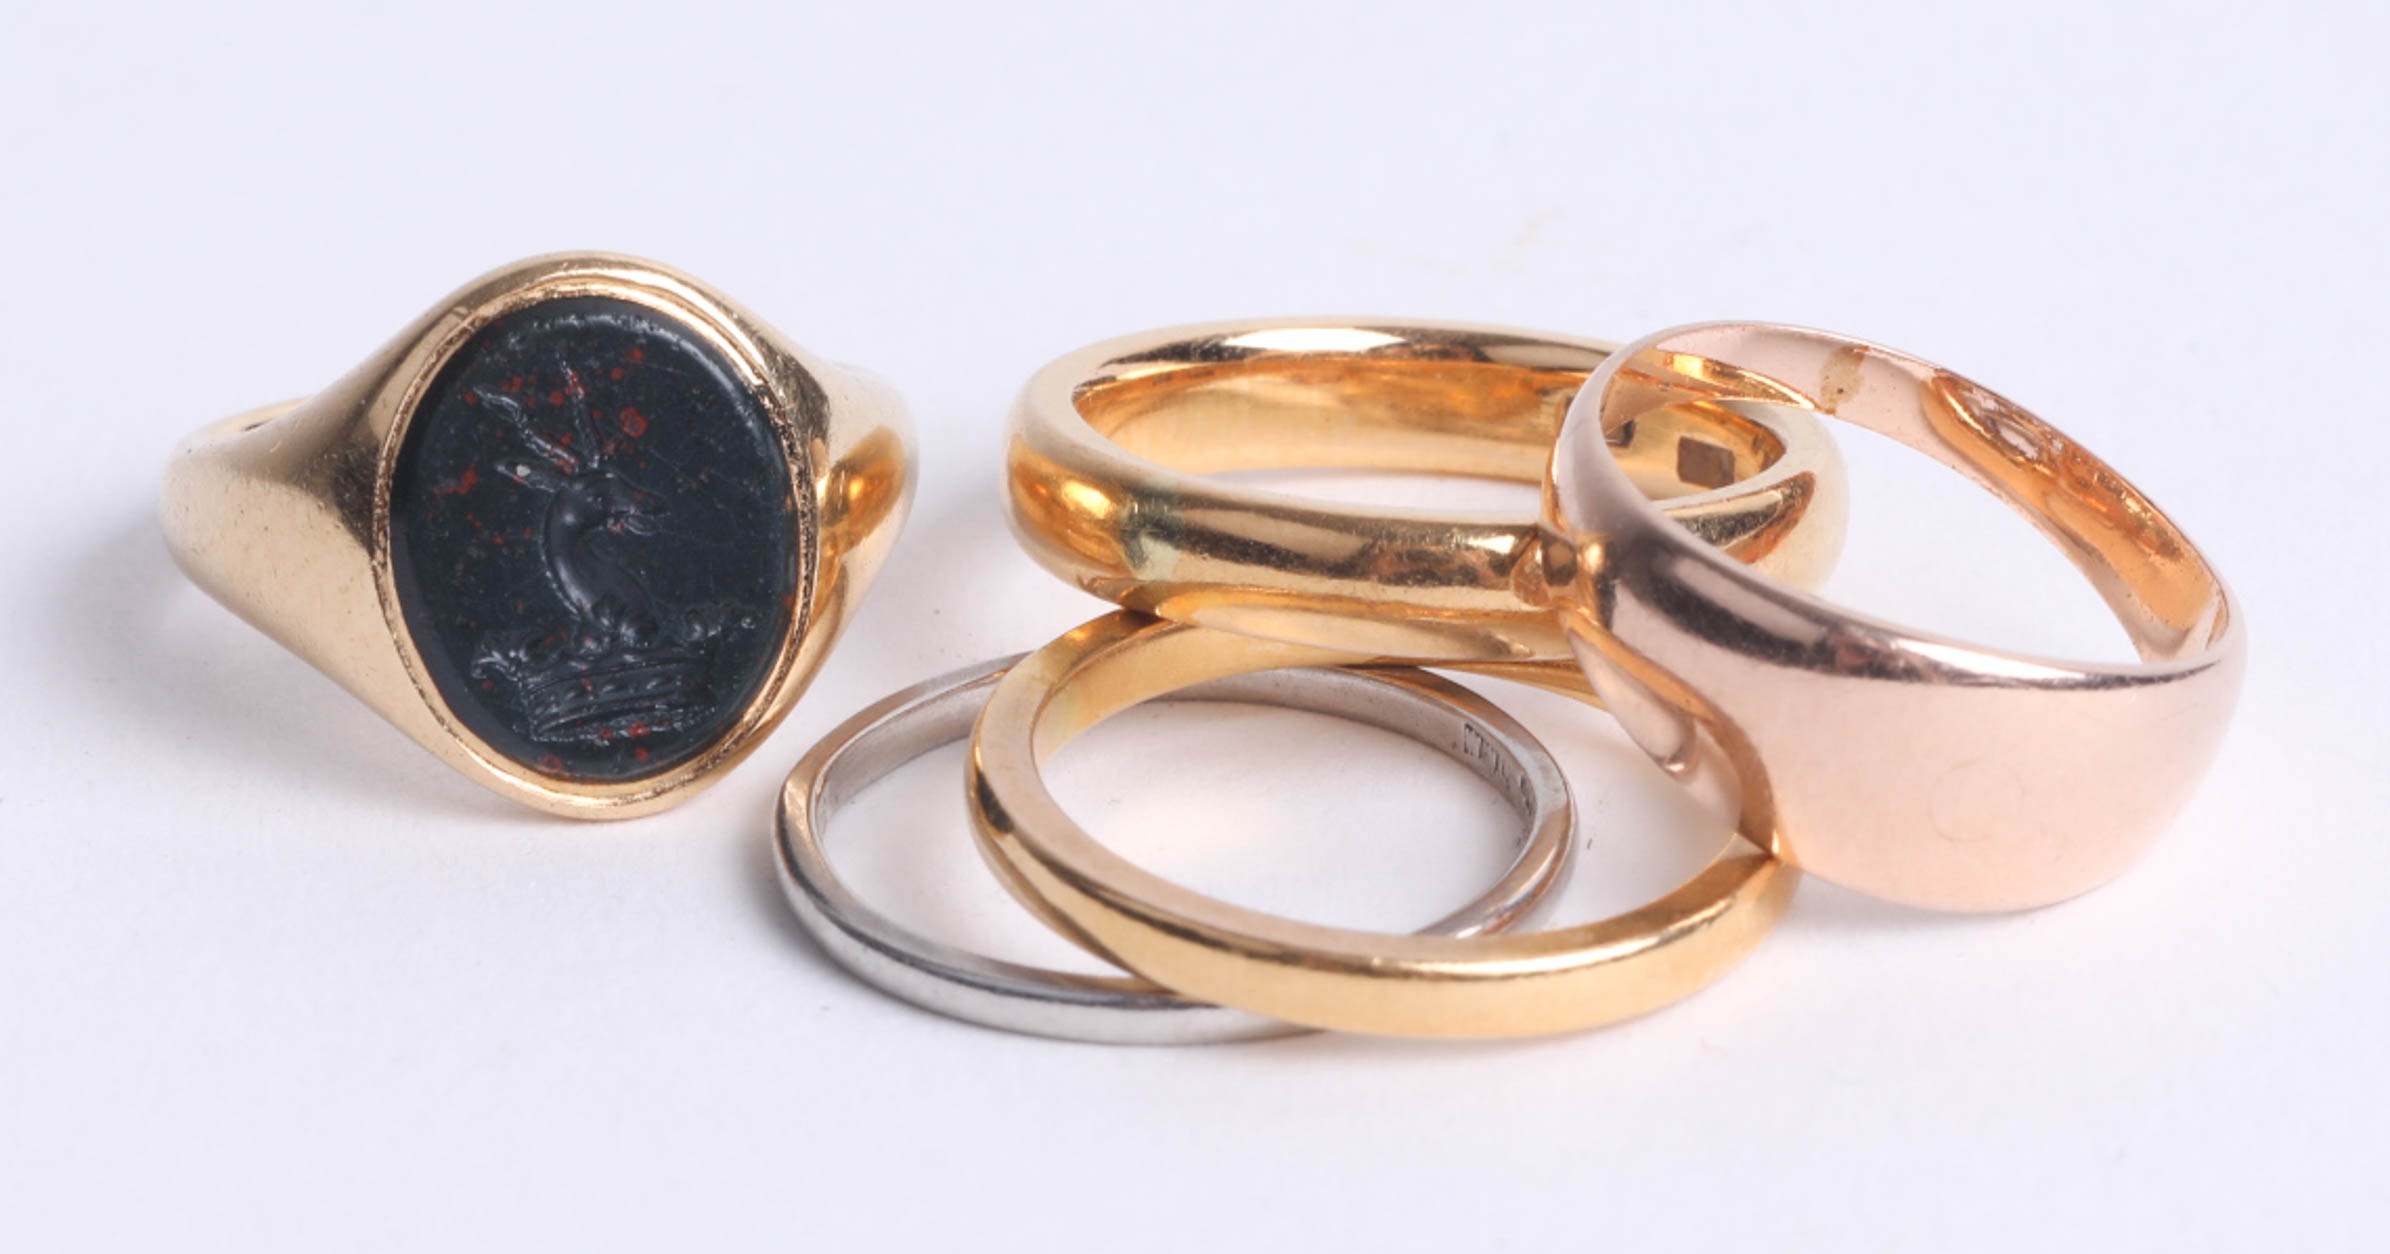 Lot 006 - A 9ct signet ring 6.2g, a 22ct wedding band 3.1g and three other various rings including platinum